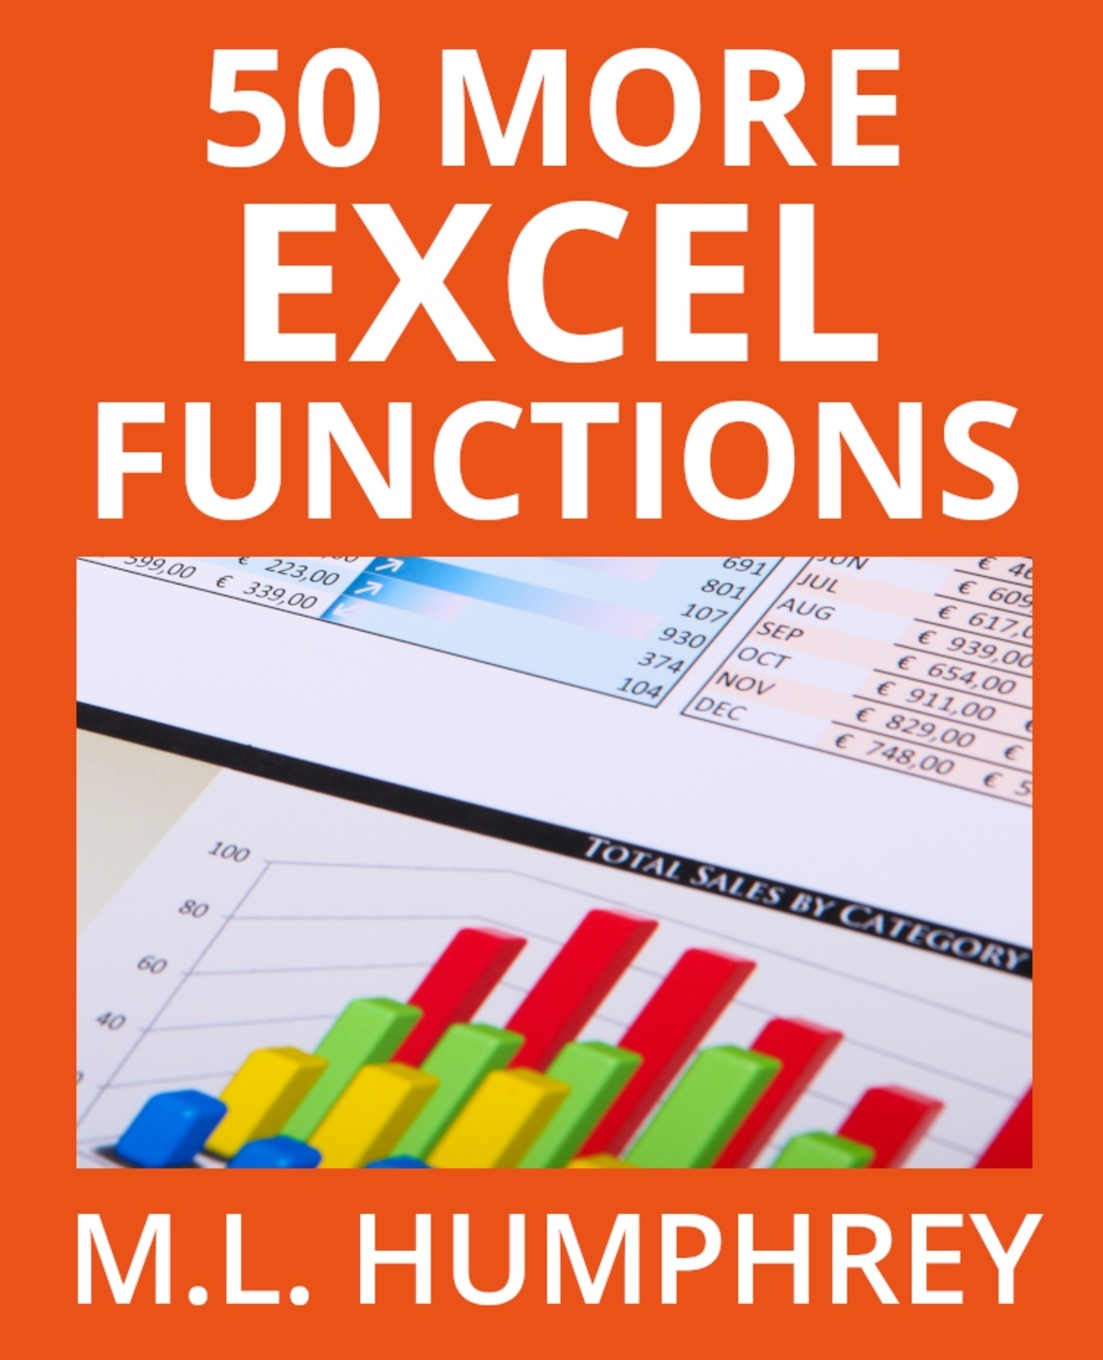 M.L. Humphrey 50 More Excel Functions nikolay pavlov excel – ready solutions